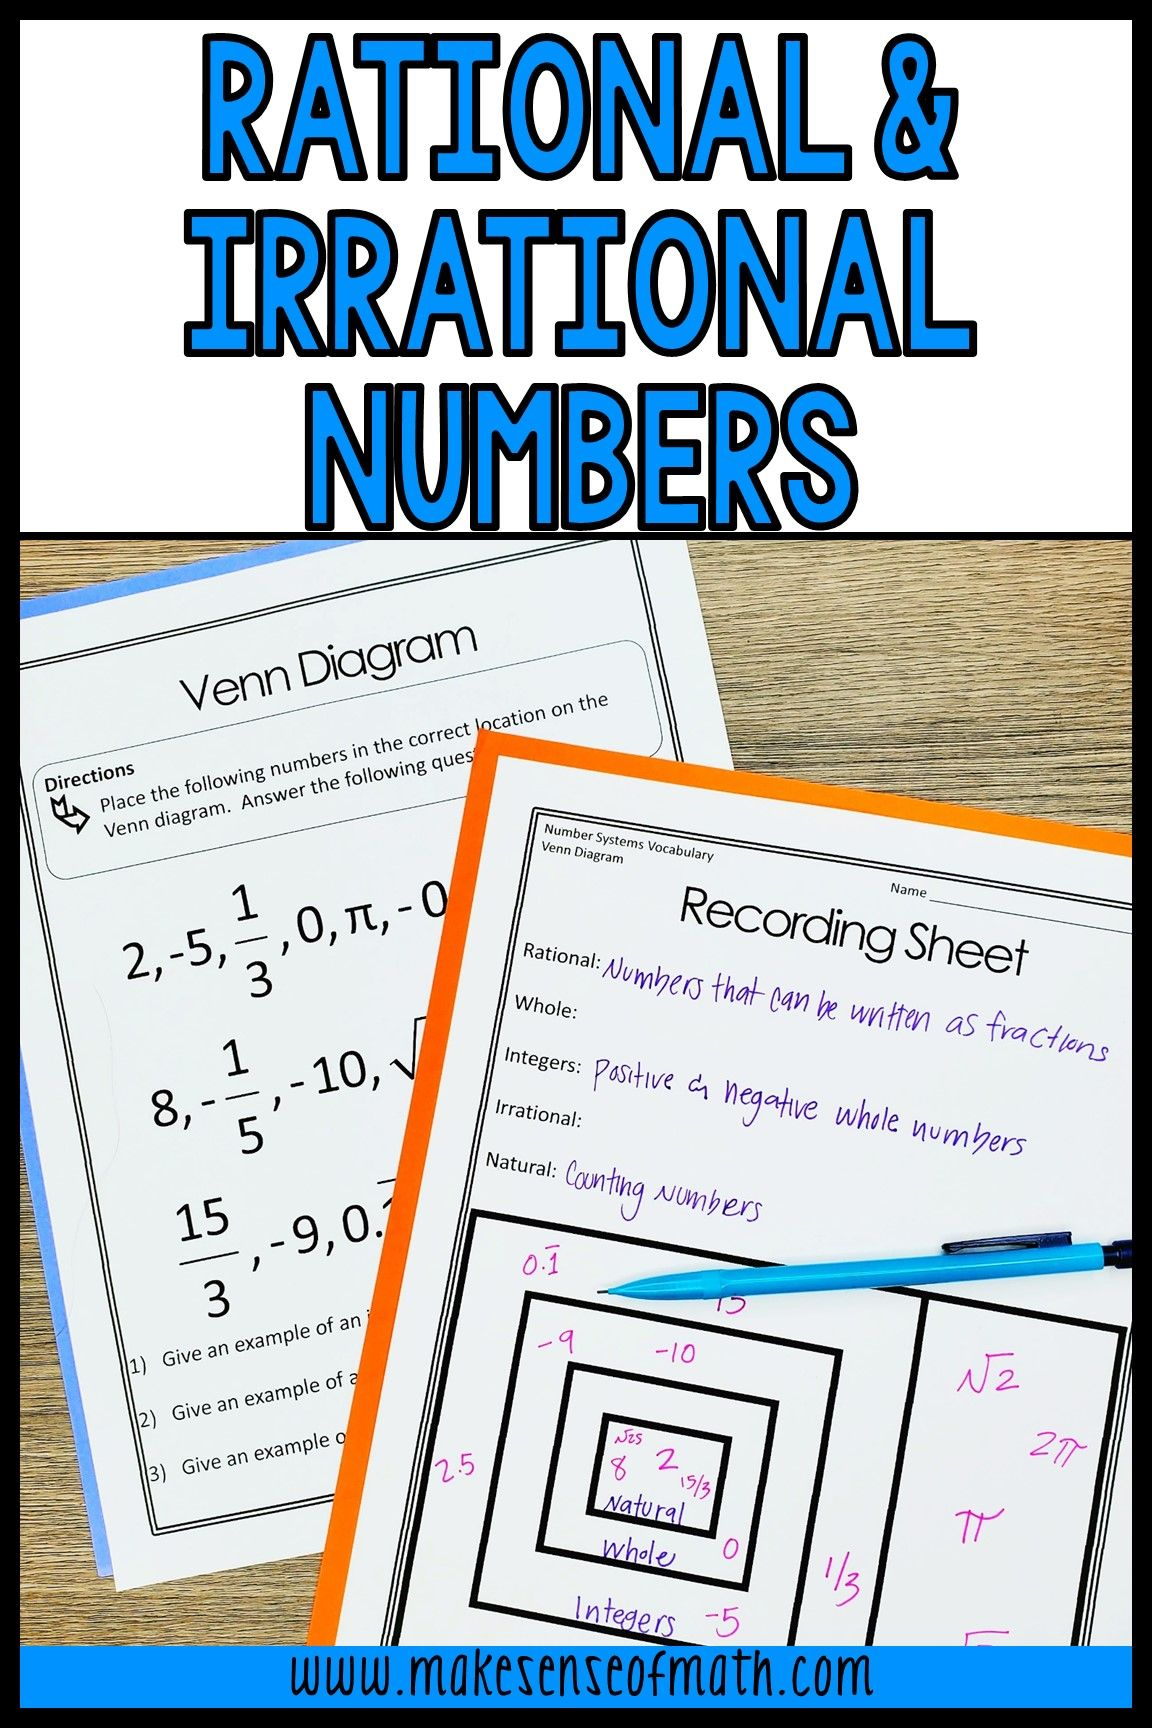 13 Rational And Irrational Numbers Worksheet